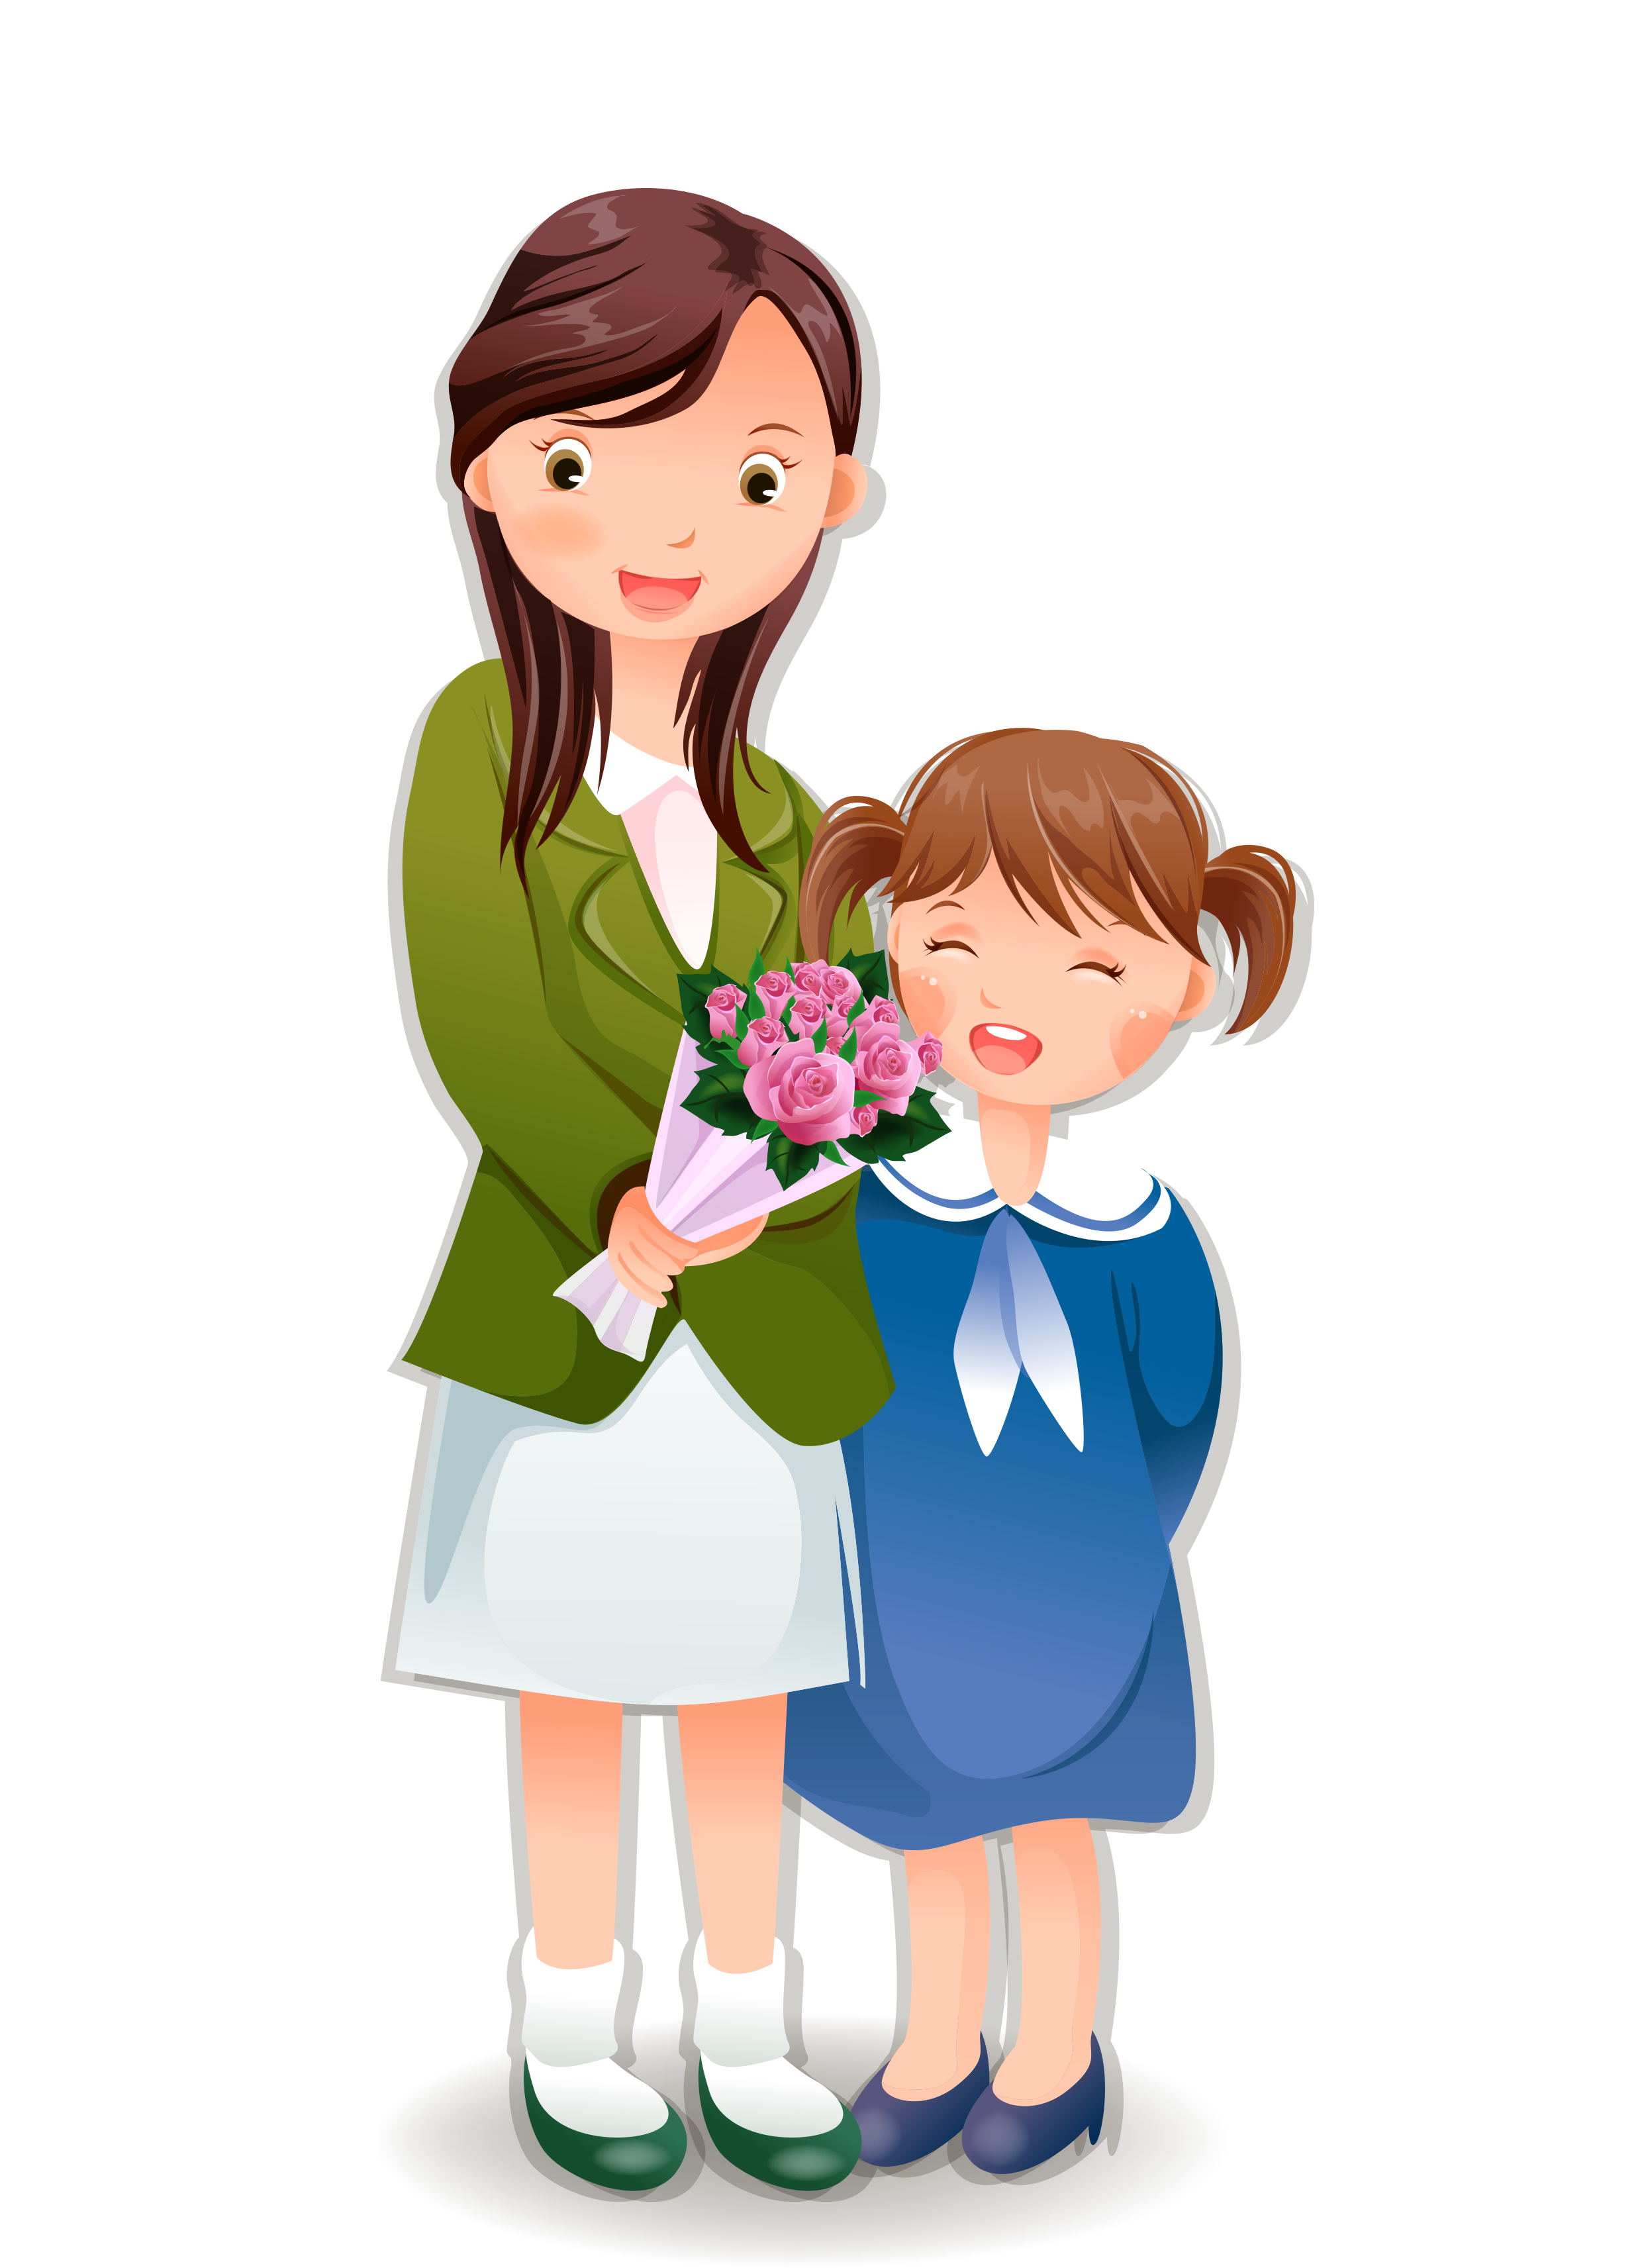 Mother clipart teacher hug, Mother teacher hug Transparent.